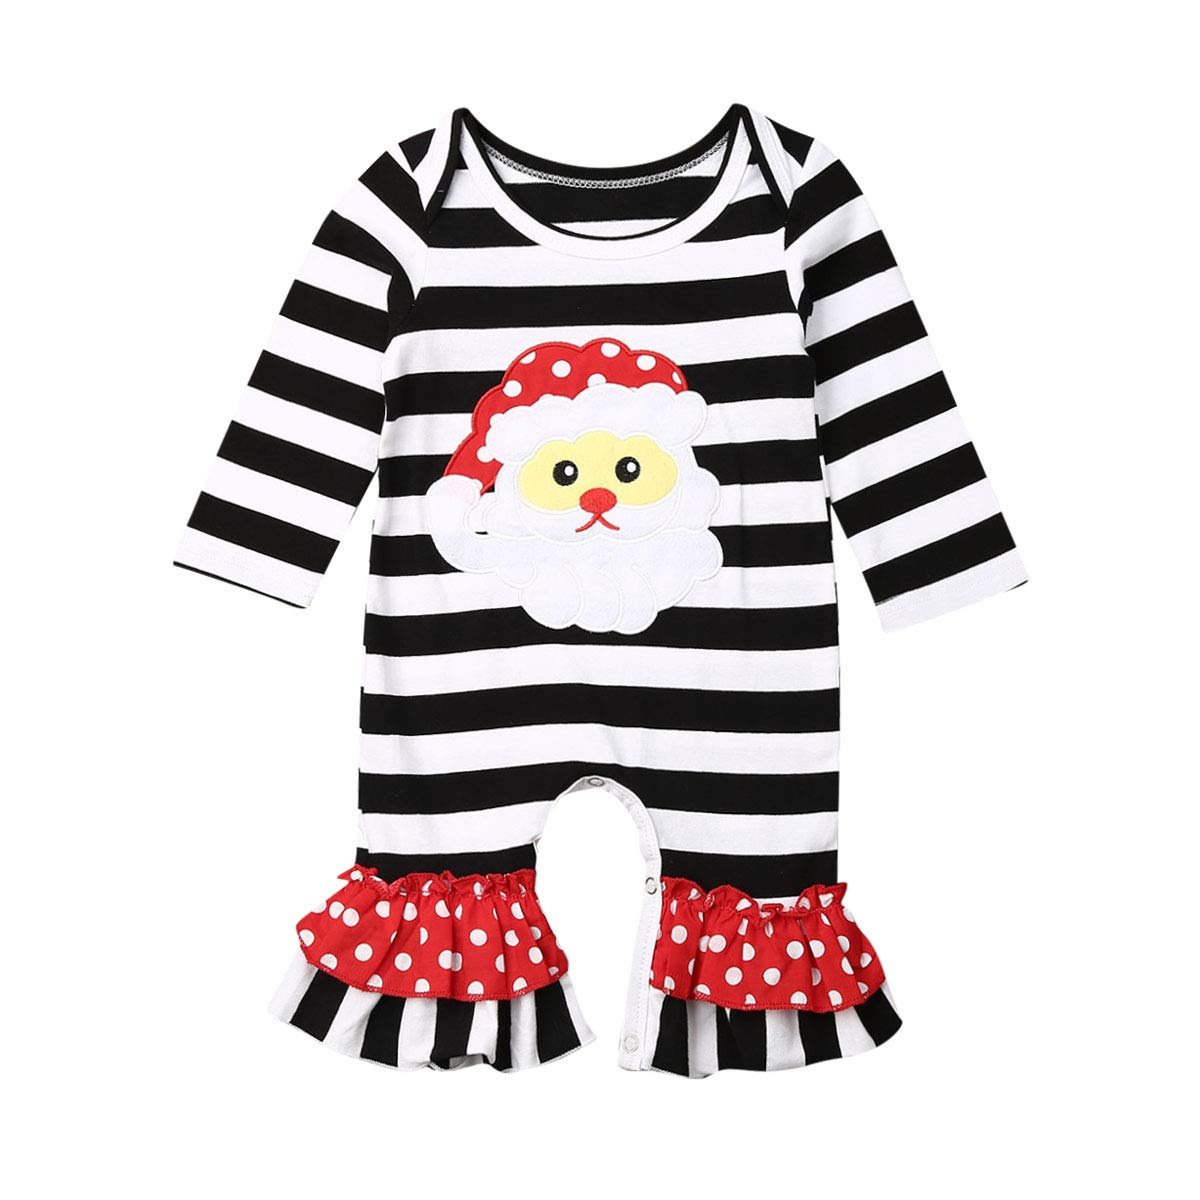 Baby Girl Christmas Outfit, Newborn Halloween Long Sleeve Striped Romper, One Piece Icing Ruffle Jumpsuit